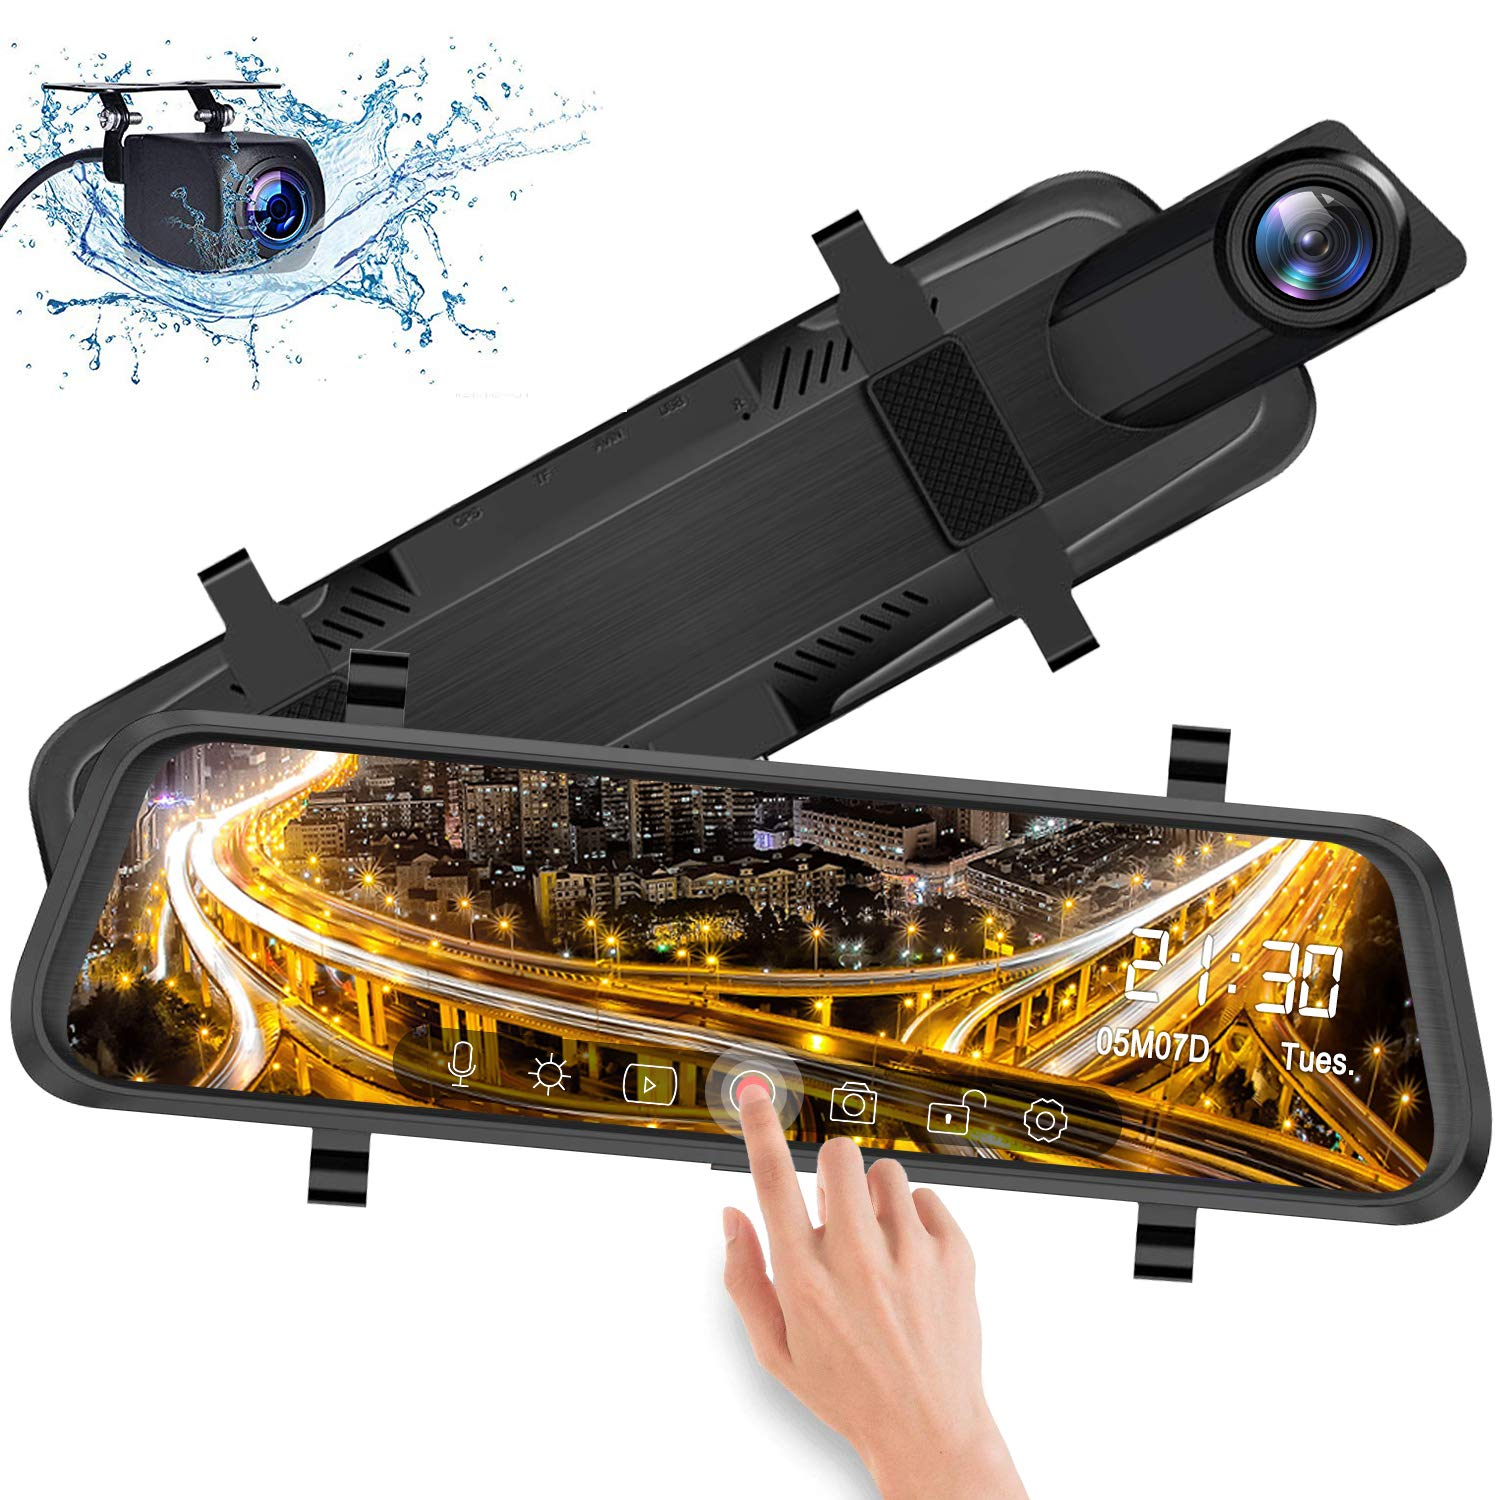 IXROAD Mirror Dash Cam 10'' Touch Screen 1080P Car DVR Front and Rear View Dual Lens with Backup Camera, Night Vision, Time Lapse, Parking Monitor, Loop Recording